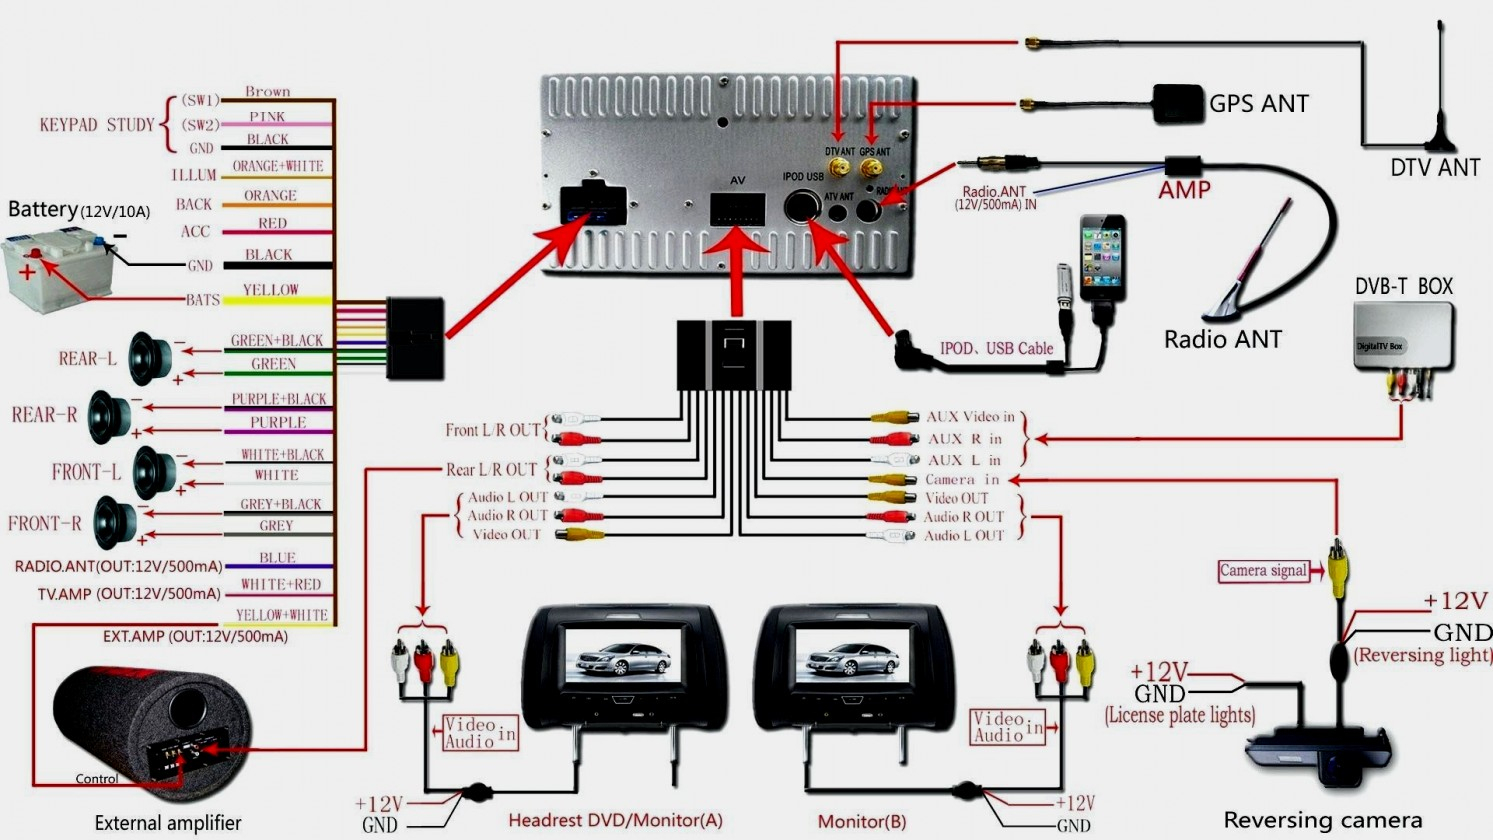 Wiring Diagram For Pioneer Avh X1500Dvd | Wiring Diagram - Pioneer Avh-X1500Dvd Wiring Diagram